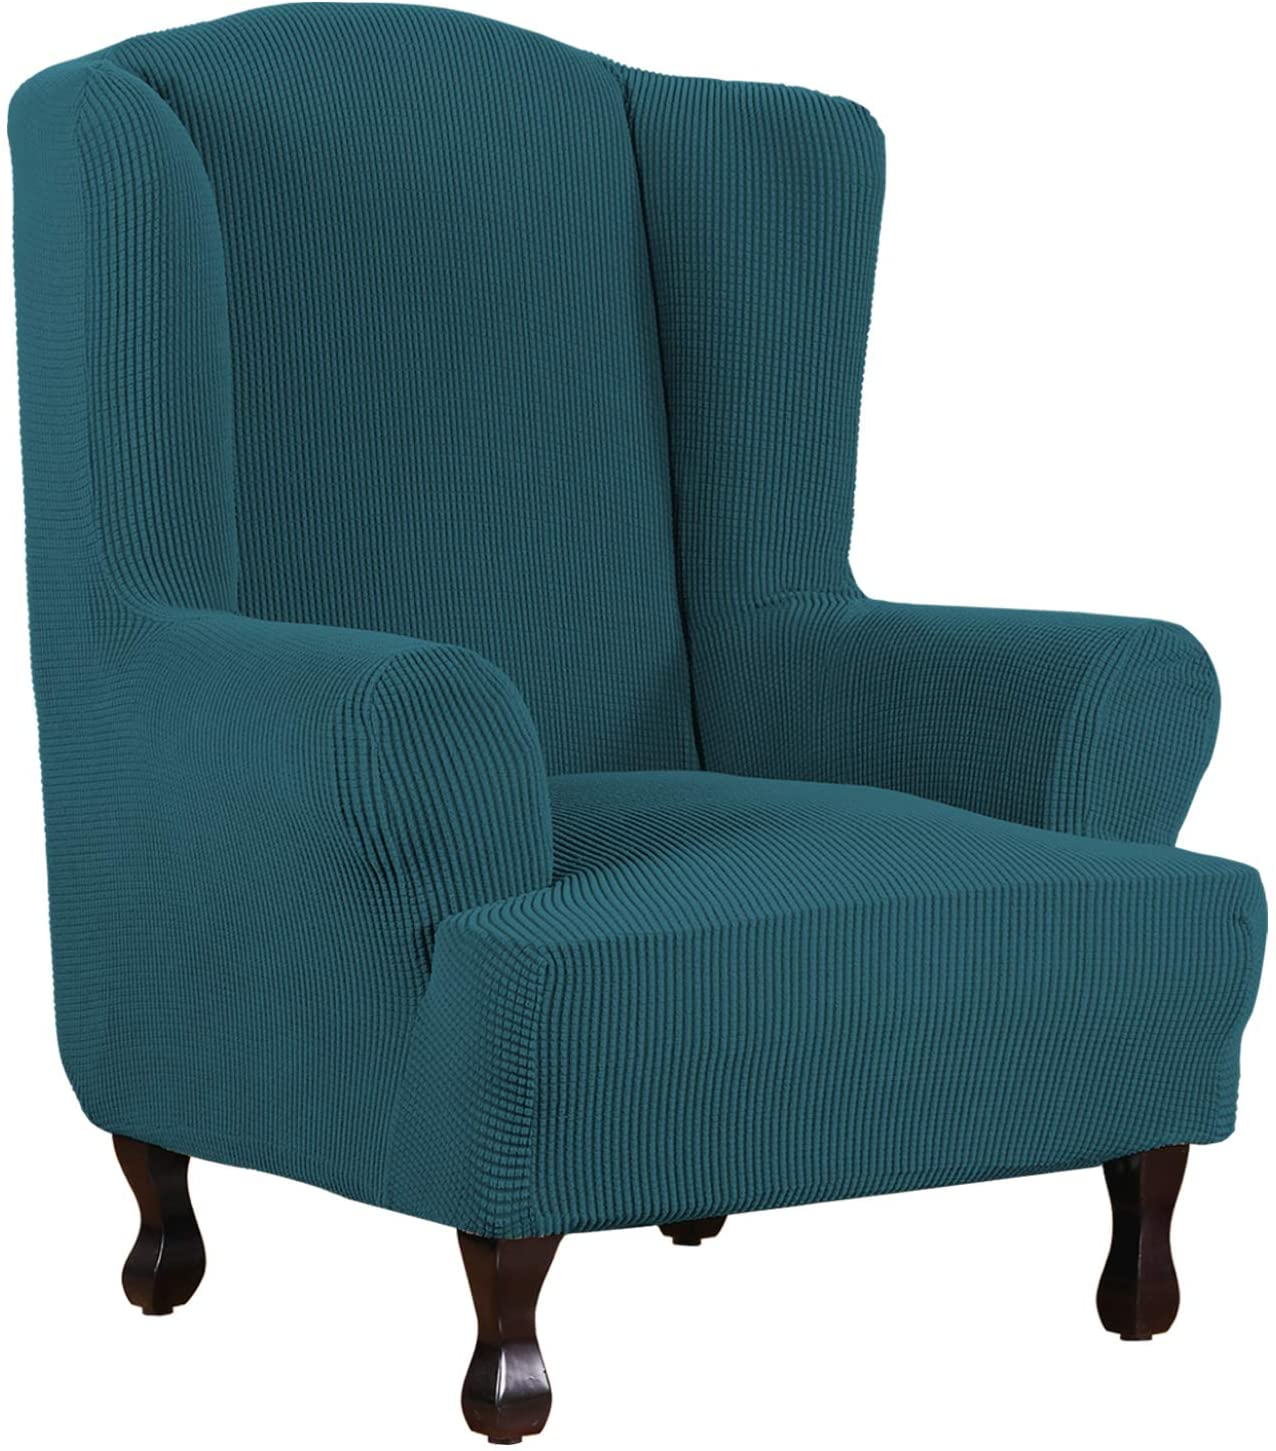 1 Piece Super Stretch Stylish Furniture Cover/Wingback Chair Cover Slipcover Spandex Jacquard Checked Pattern, Super Soft Slipcover Machine Washable/Skid Resistance (Wing Chair, Deep Teal)